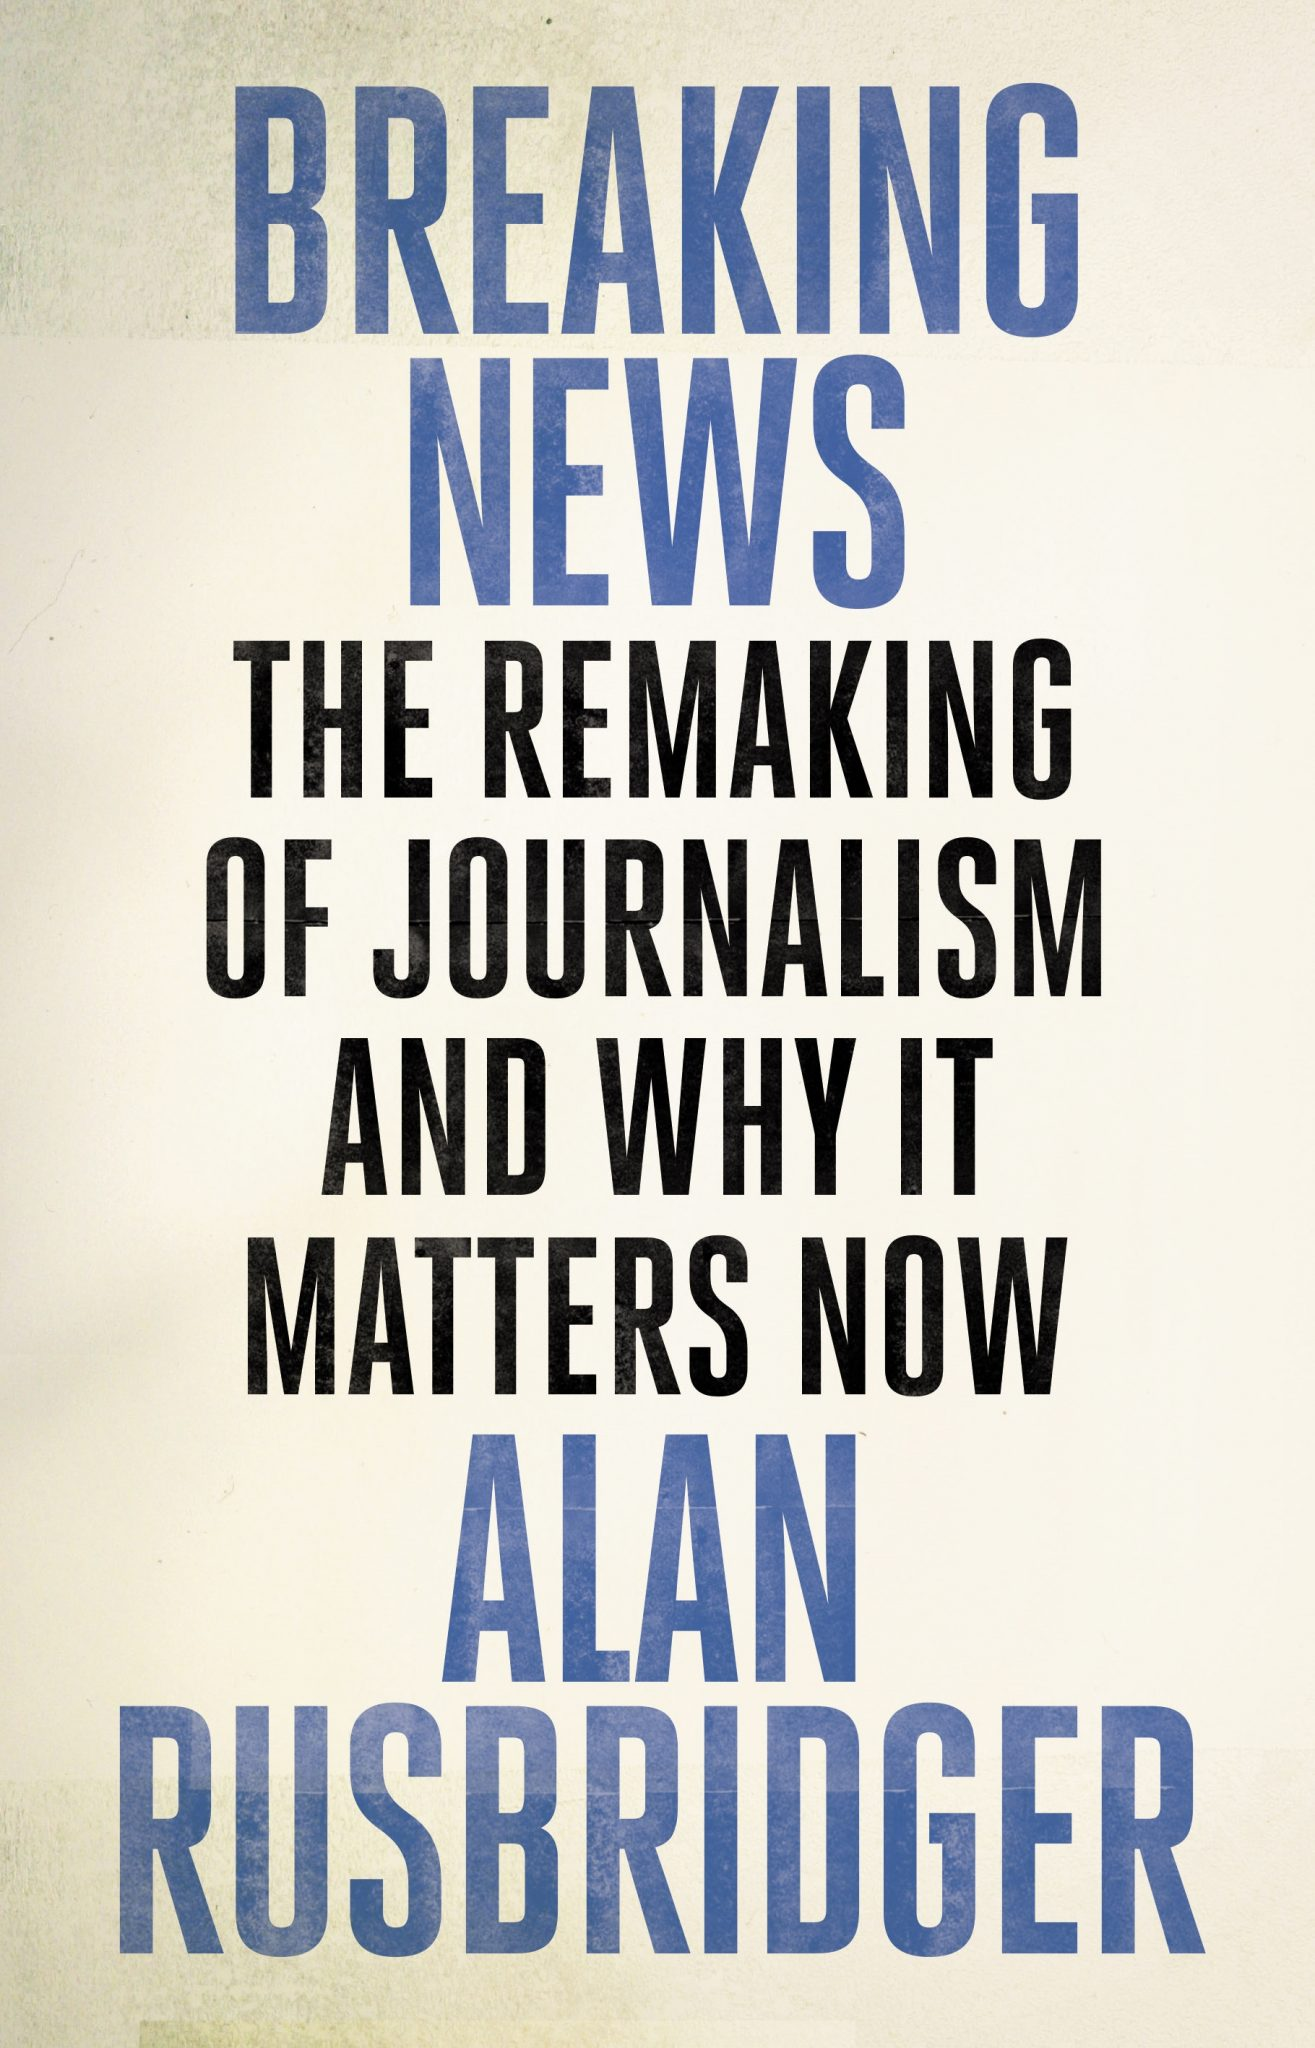 Image of Alan Rusbridger – Breaking News